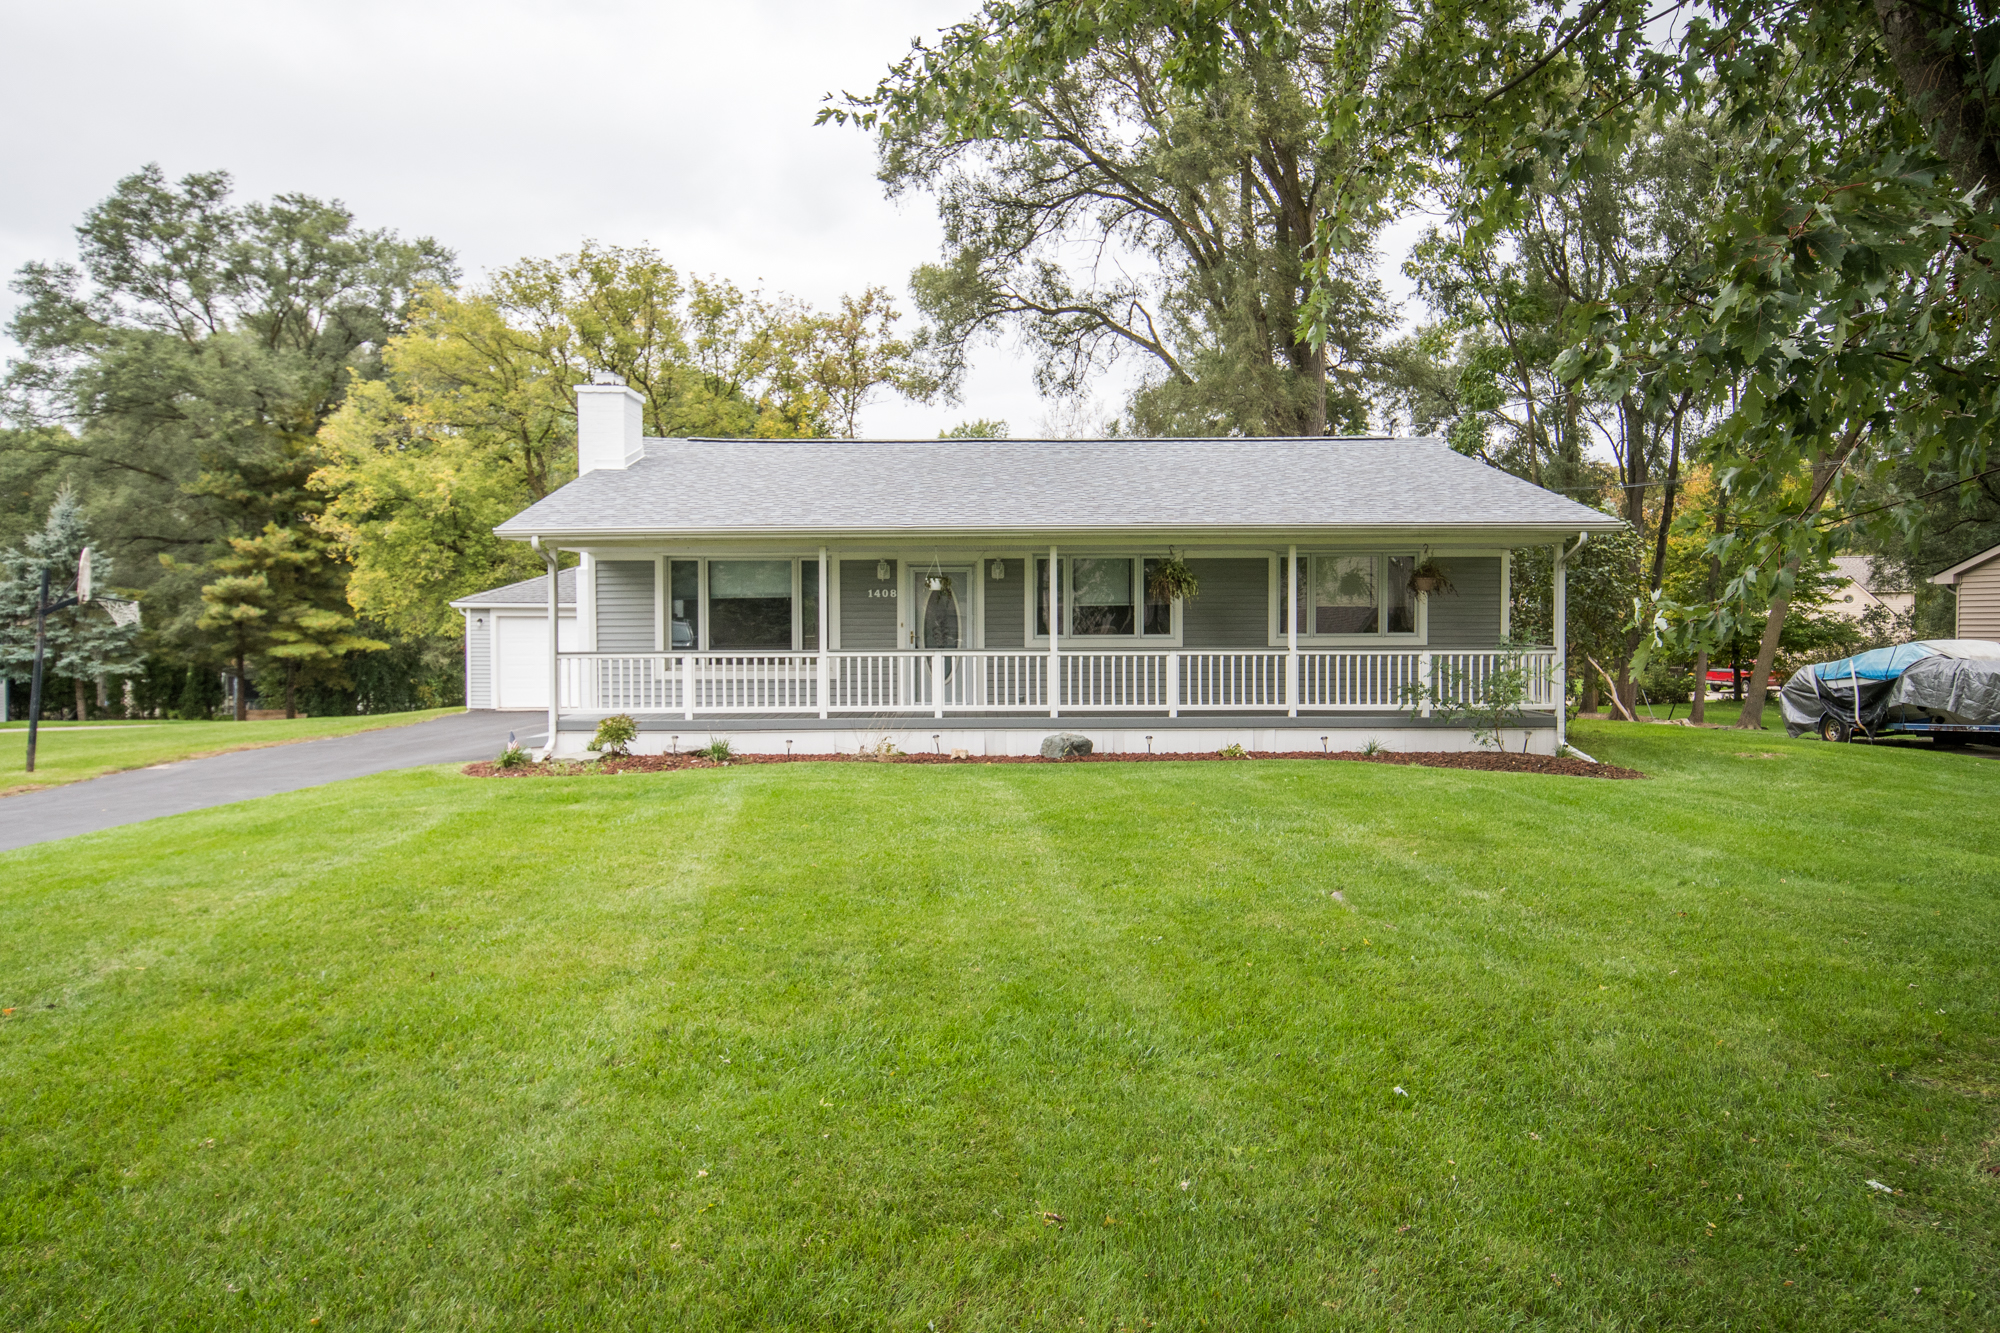 Vanstone- Commerce Twp - $260,000   DOM 8 / Sold for 98% of asking price / 5 Showings